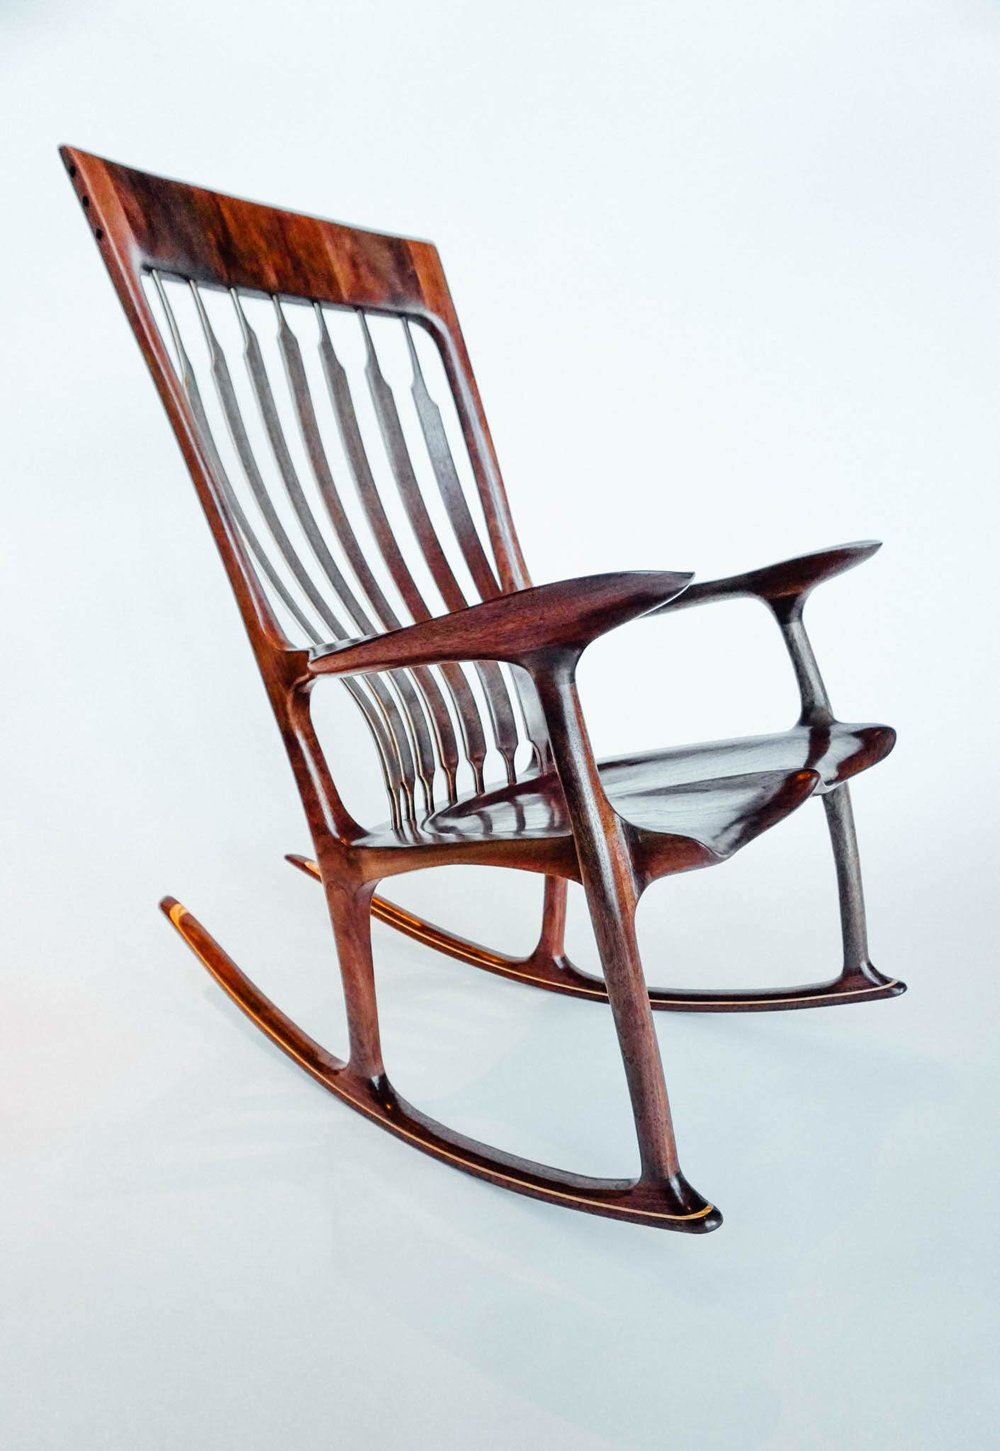 This profile shot provides a nice look at the subtle curves in the seat to leg transitions.  Also note the maple wood highlight in the rocker.  This is a popular but optional feature.